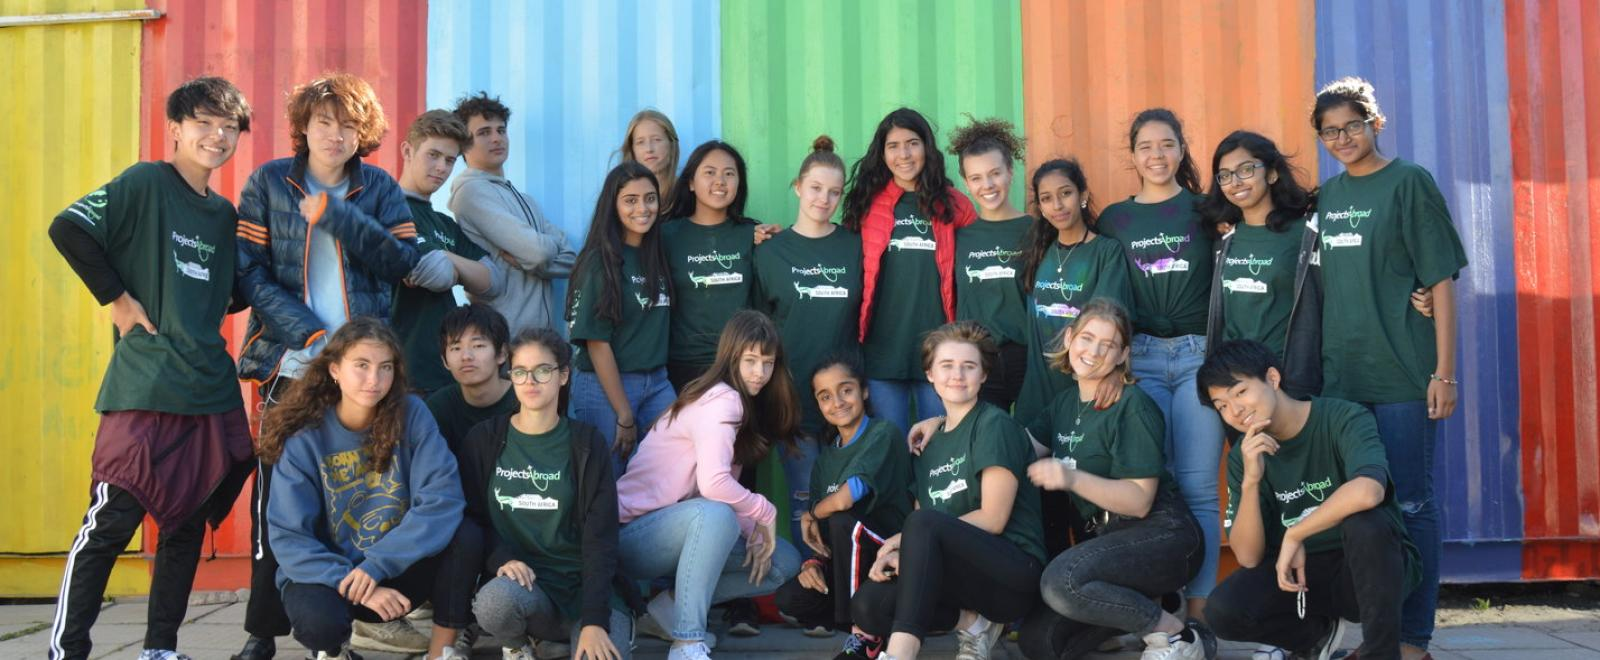 A group of teenagers from the same school on a group volunteer trip to South Africa.